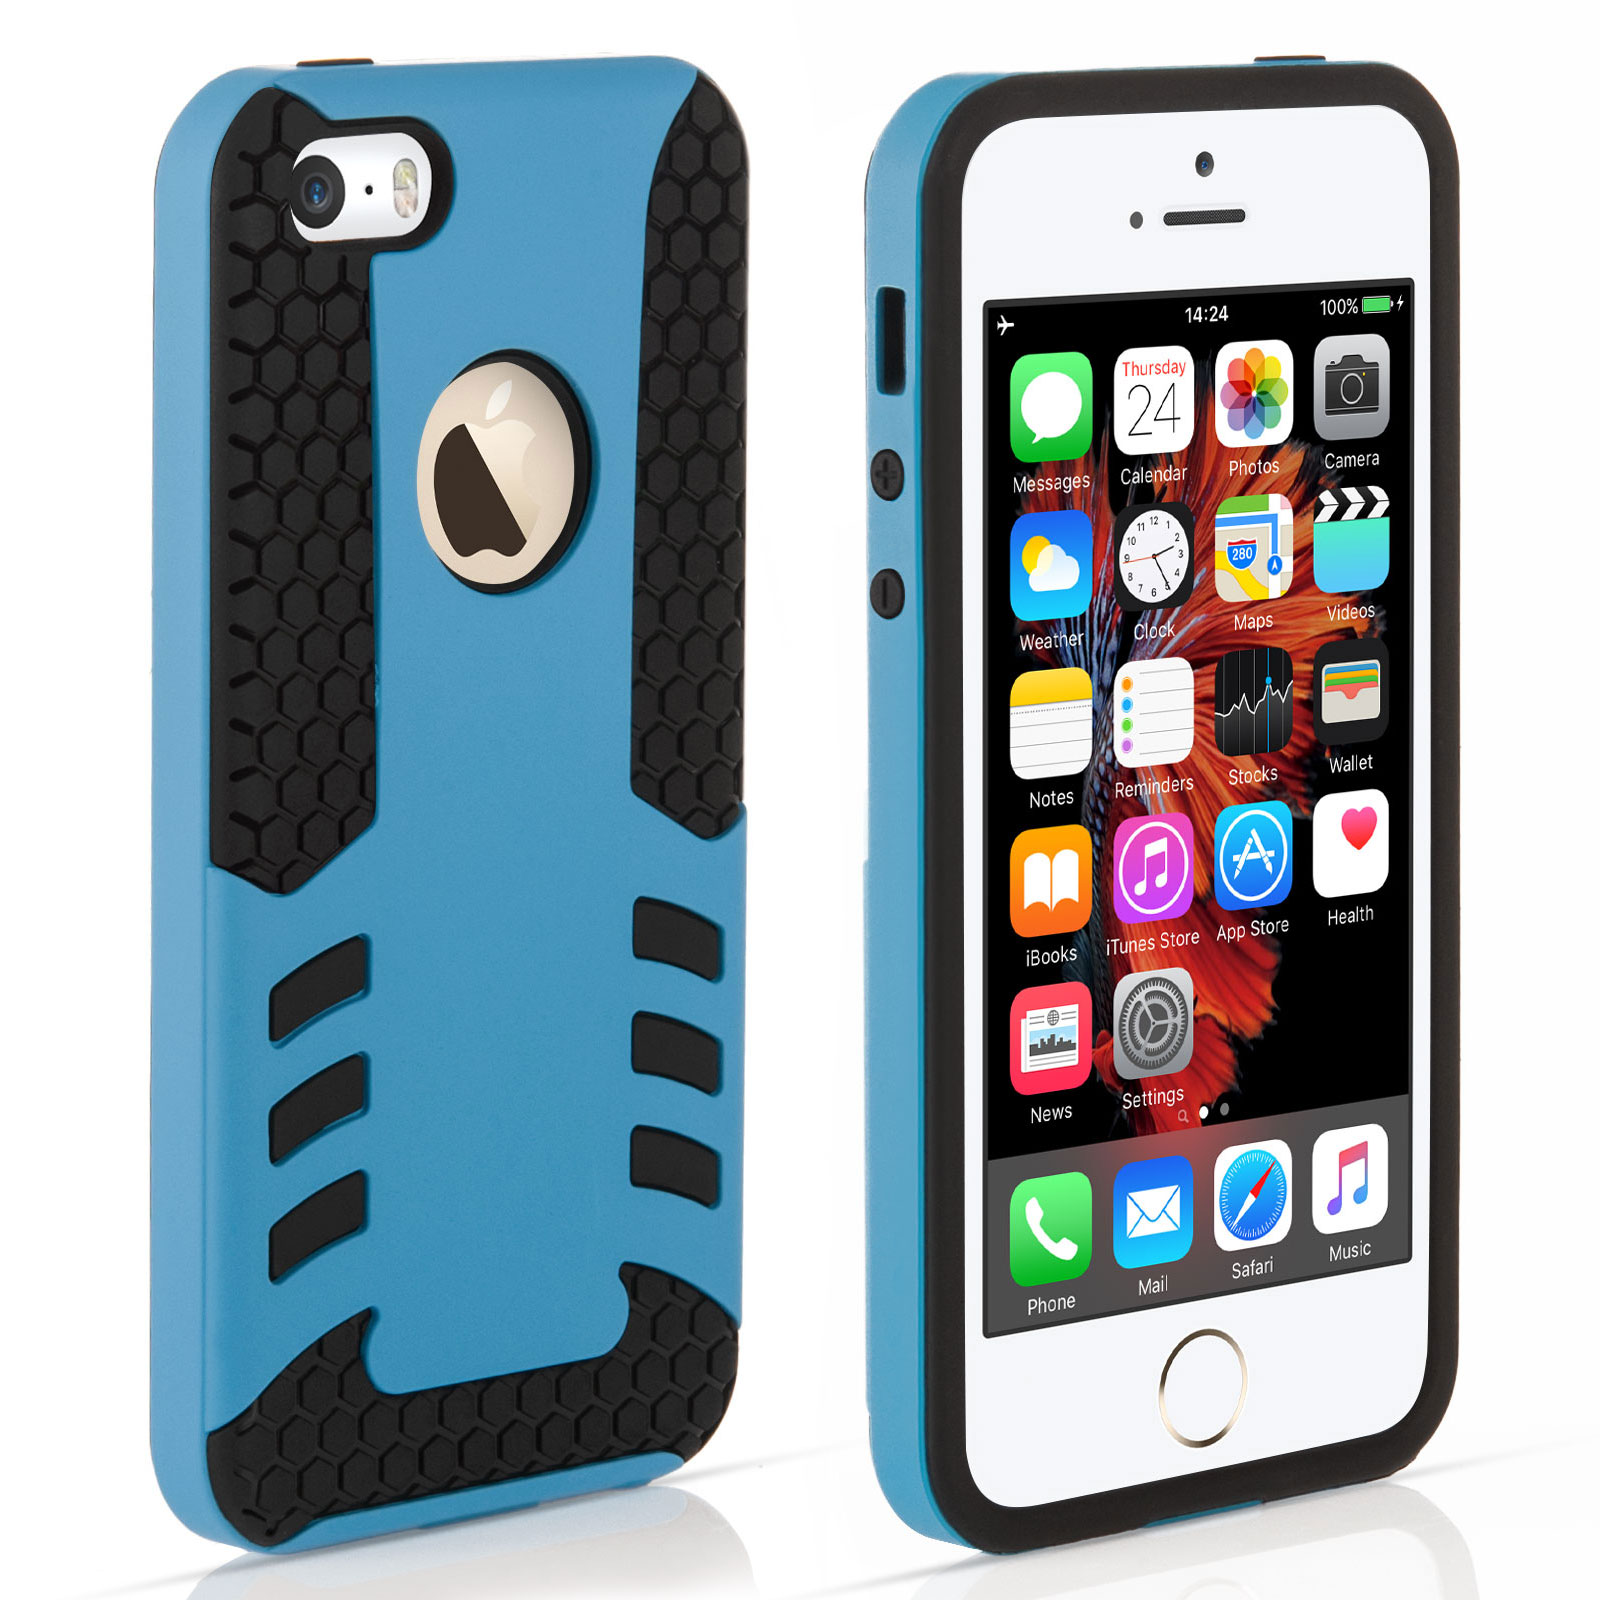 YouSave iPhone 5 / 5S / SE Border Combo Case - Blue